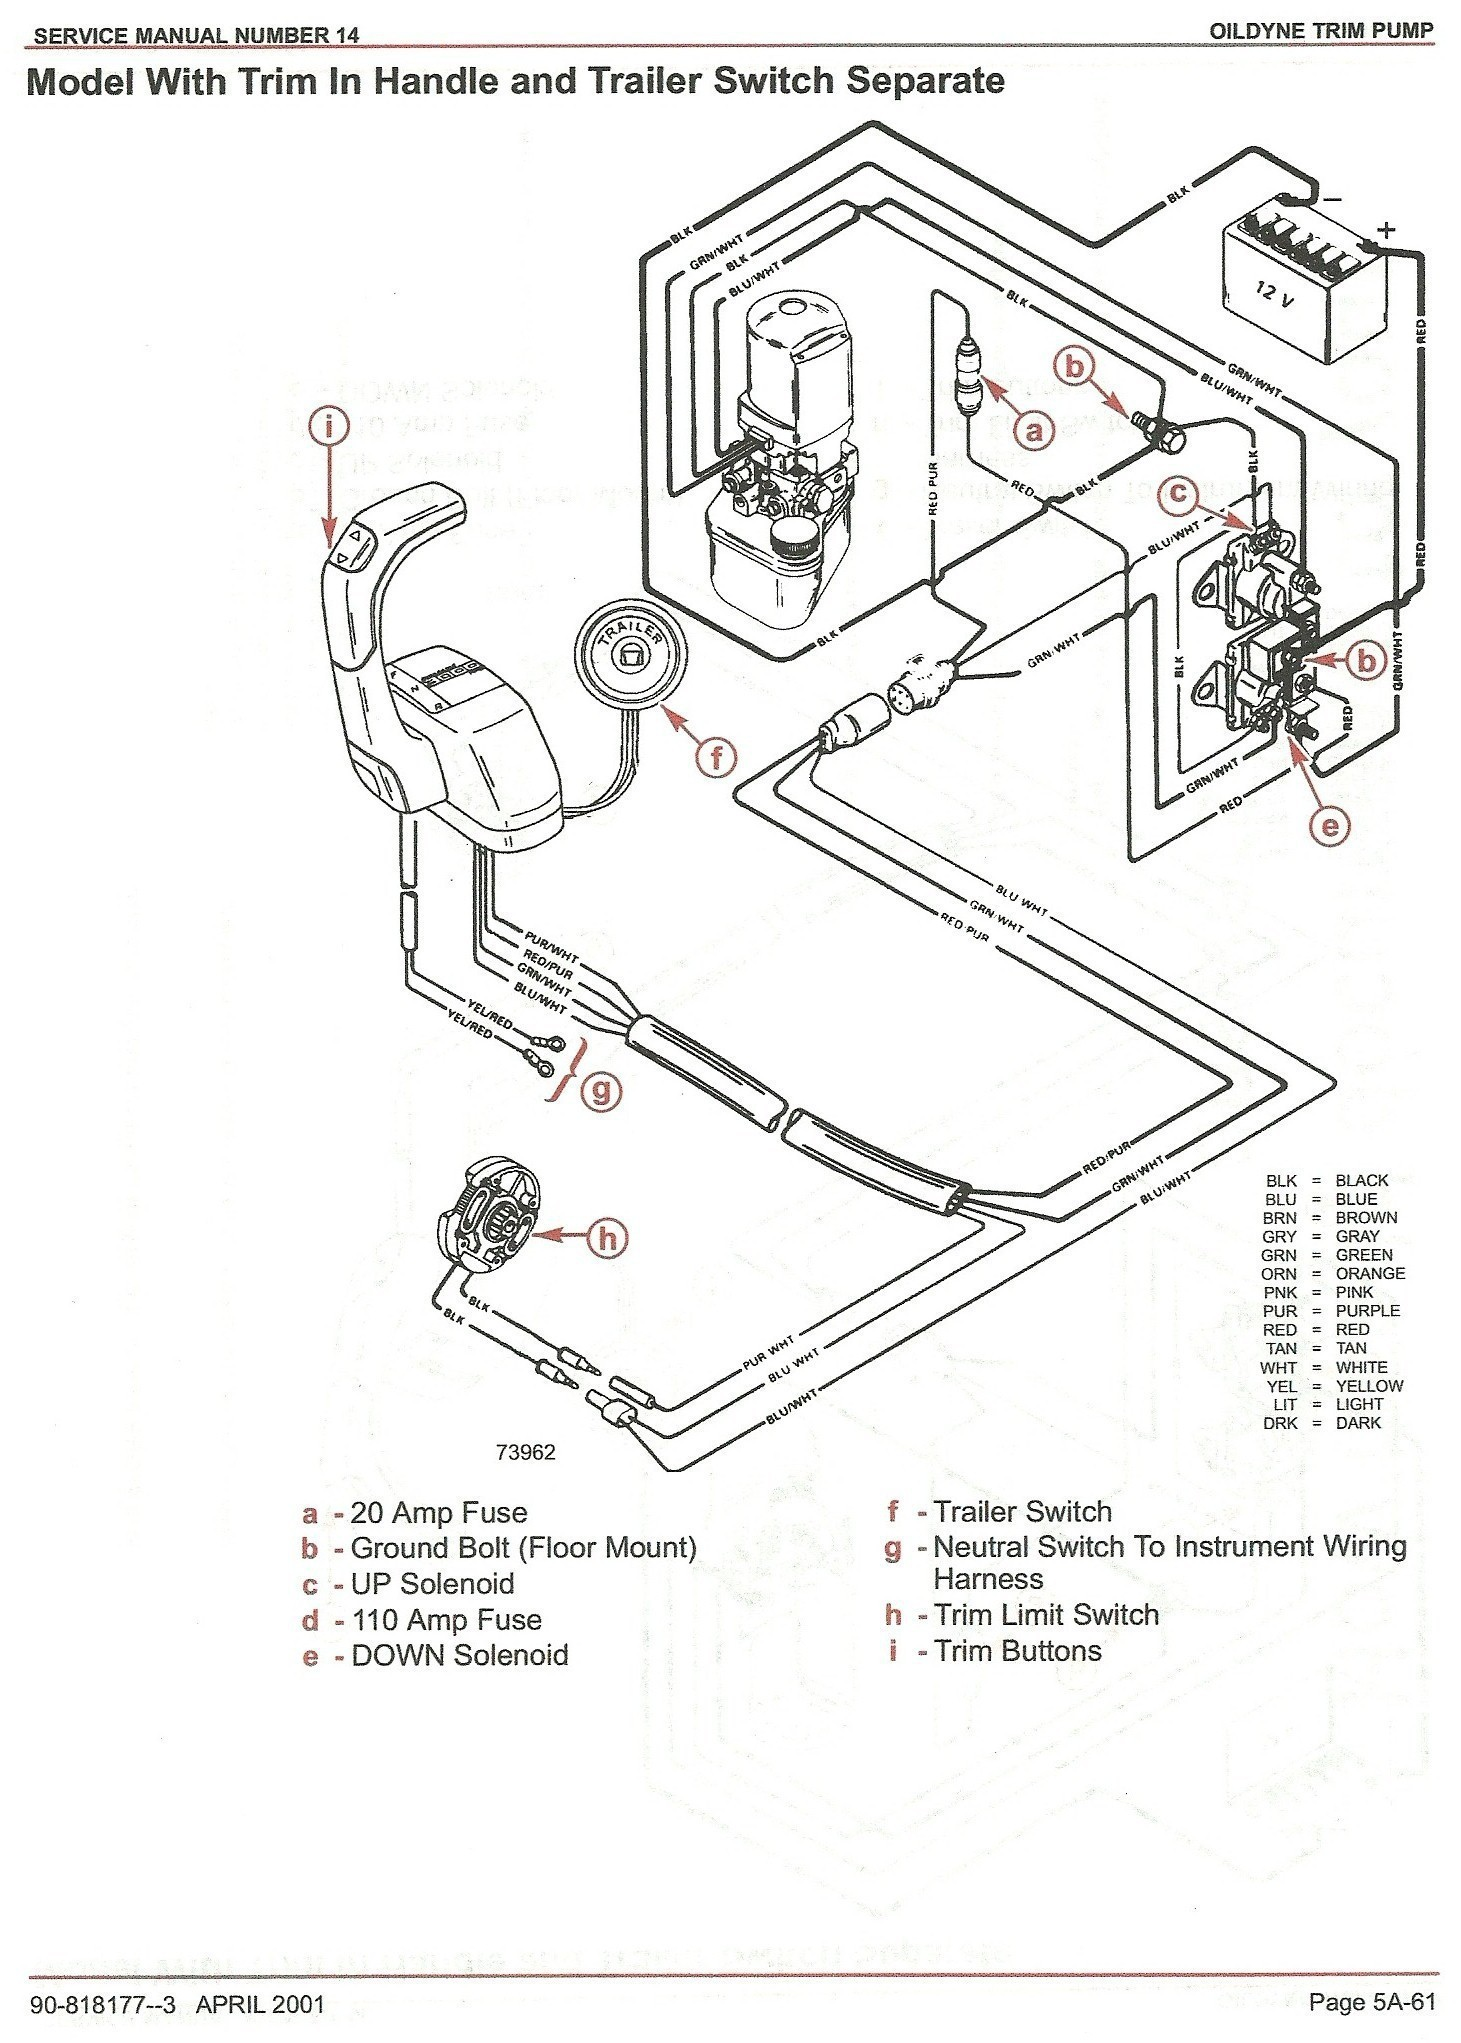 mercury trim pump wiring diagram wiring diagram post Mercruiser Tachometer Wiring Diagram mercruiser tilt trim gauge wiring diagram 5 16 artatec automobile de \\u2022 omc tilt trim wiring diagram mercury trim pump wiring diagram